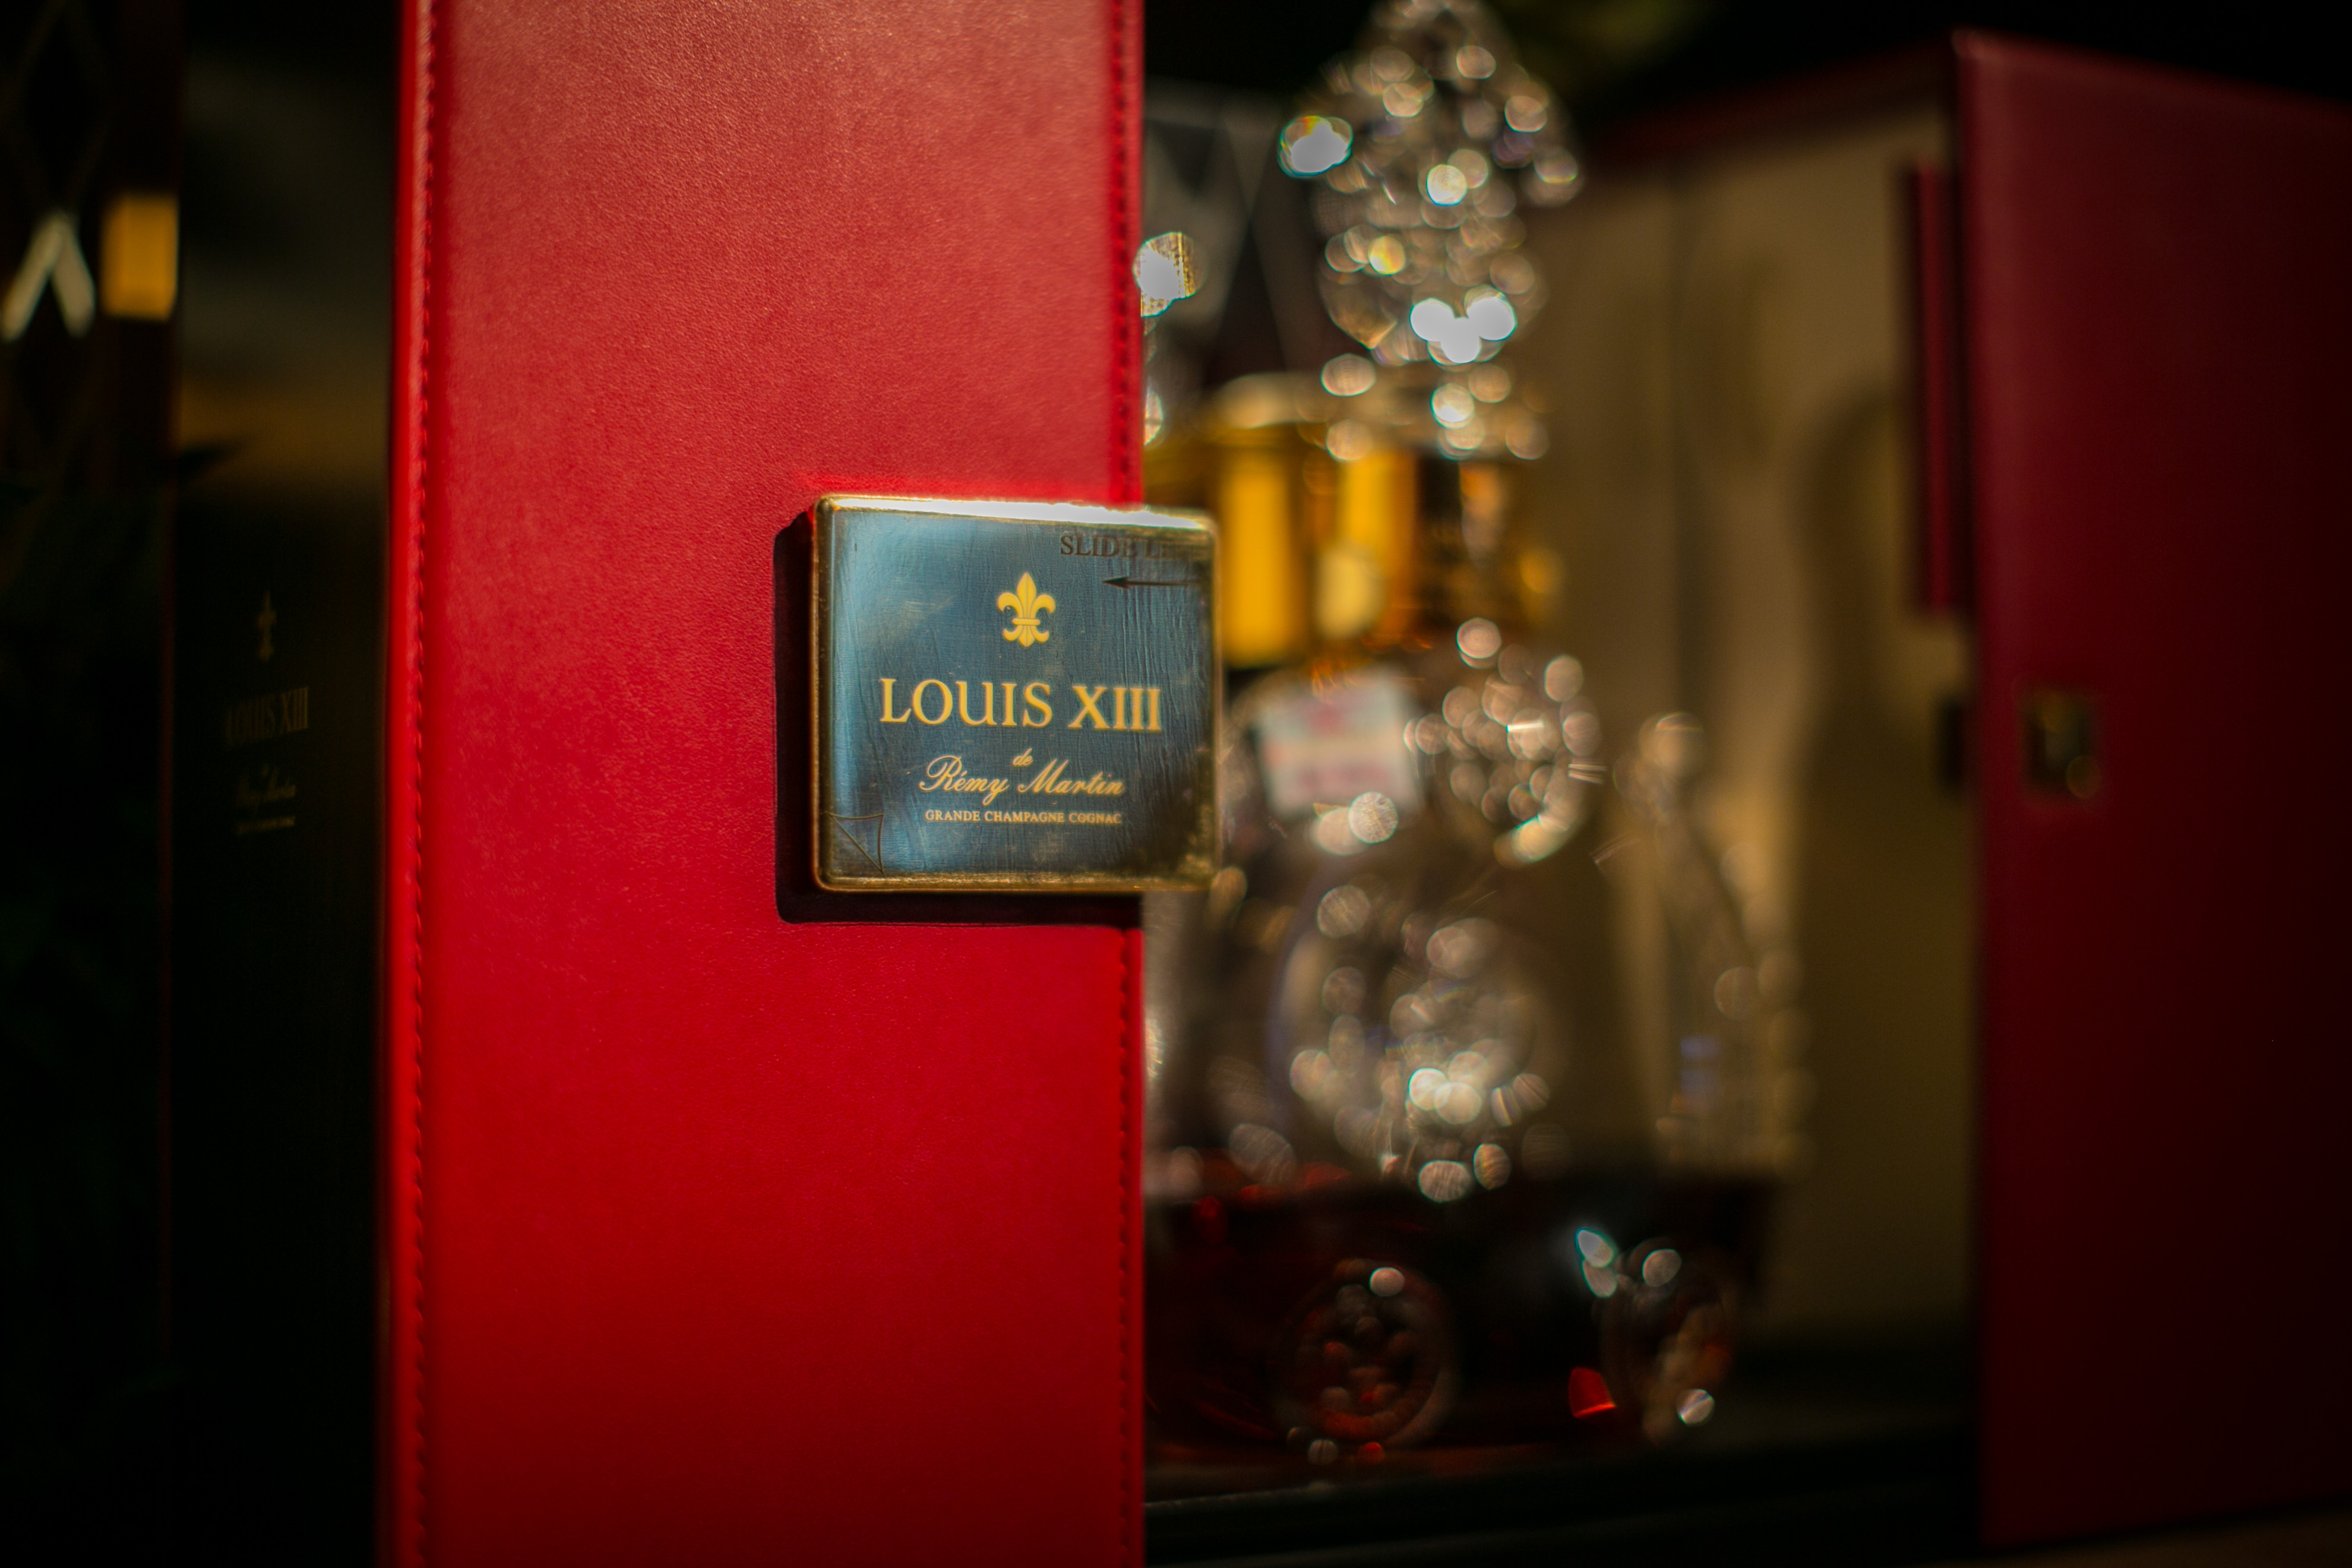 The Lodge Louis XIII